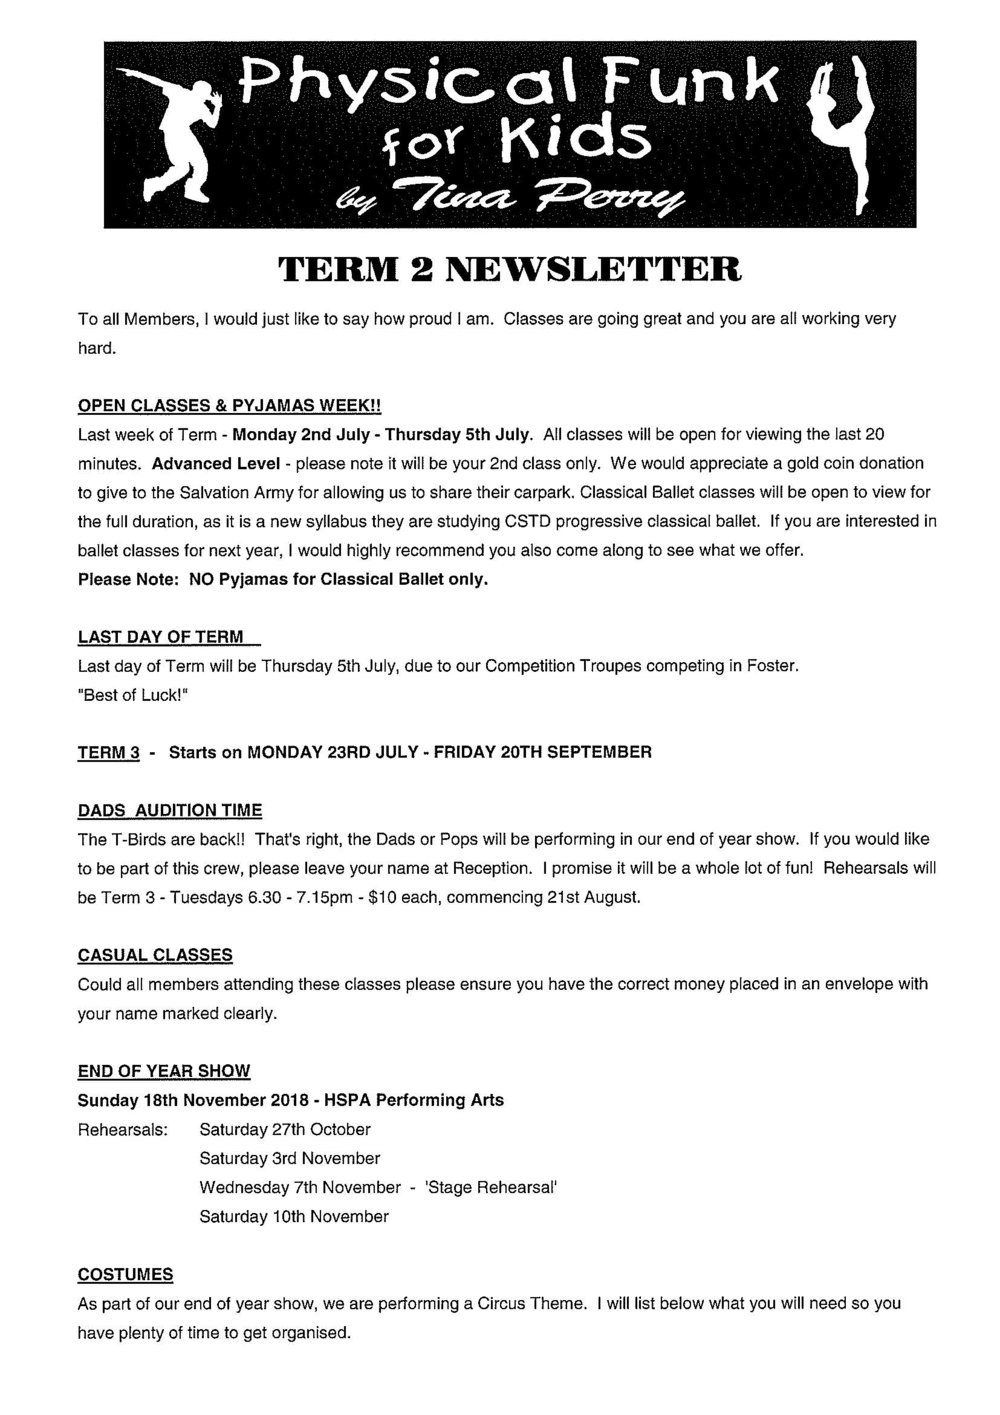 term 2 newsletter_Page_1.jpg